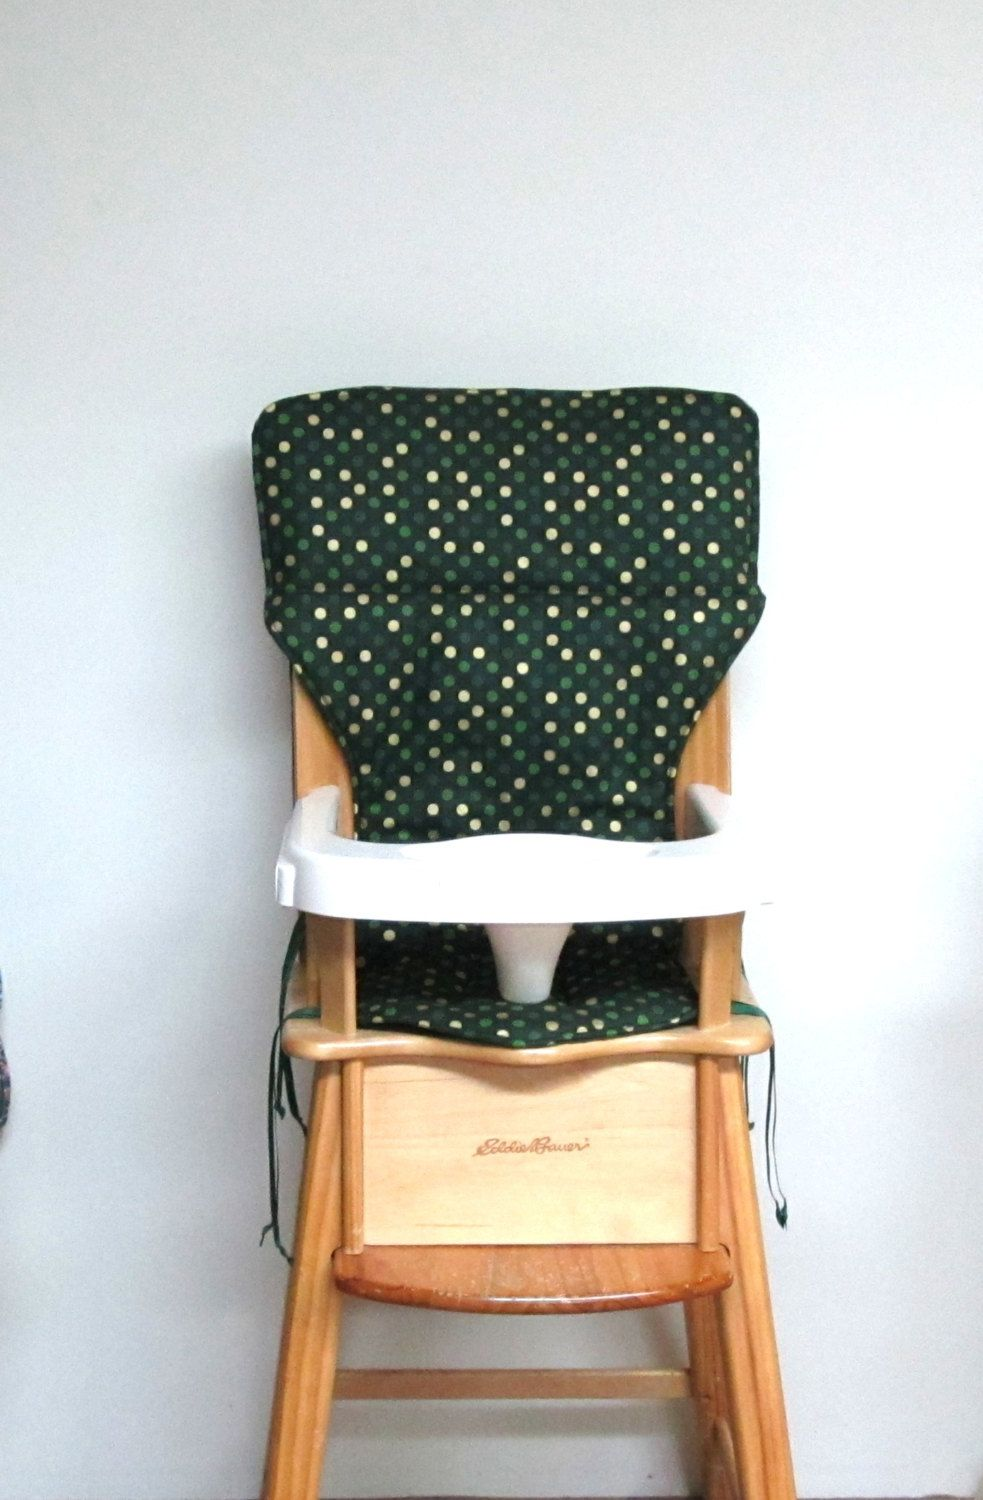 Jenny Lind High Chair Pad Replacement Baby Accessory Ed Bauer Nursery Decor Feeding Green With Gold Metallic Dots By